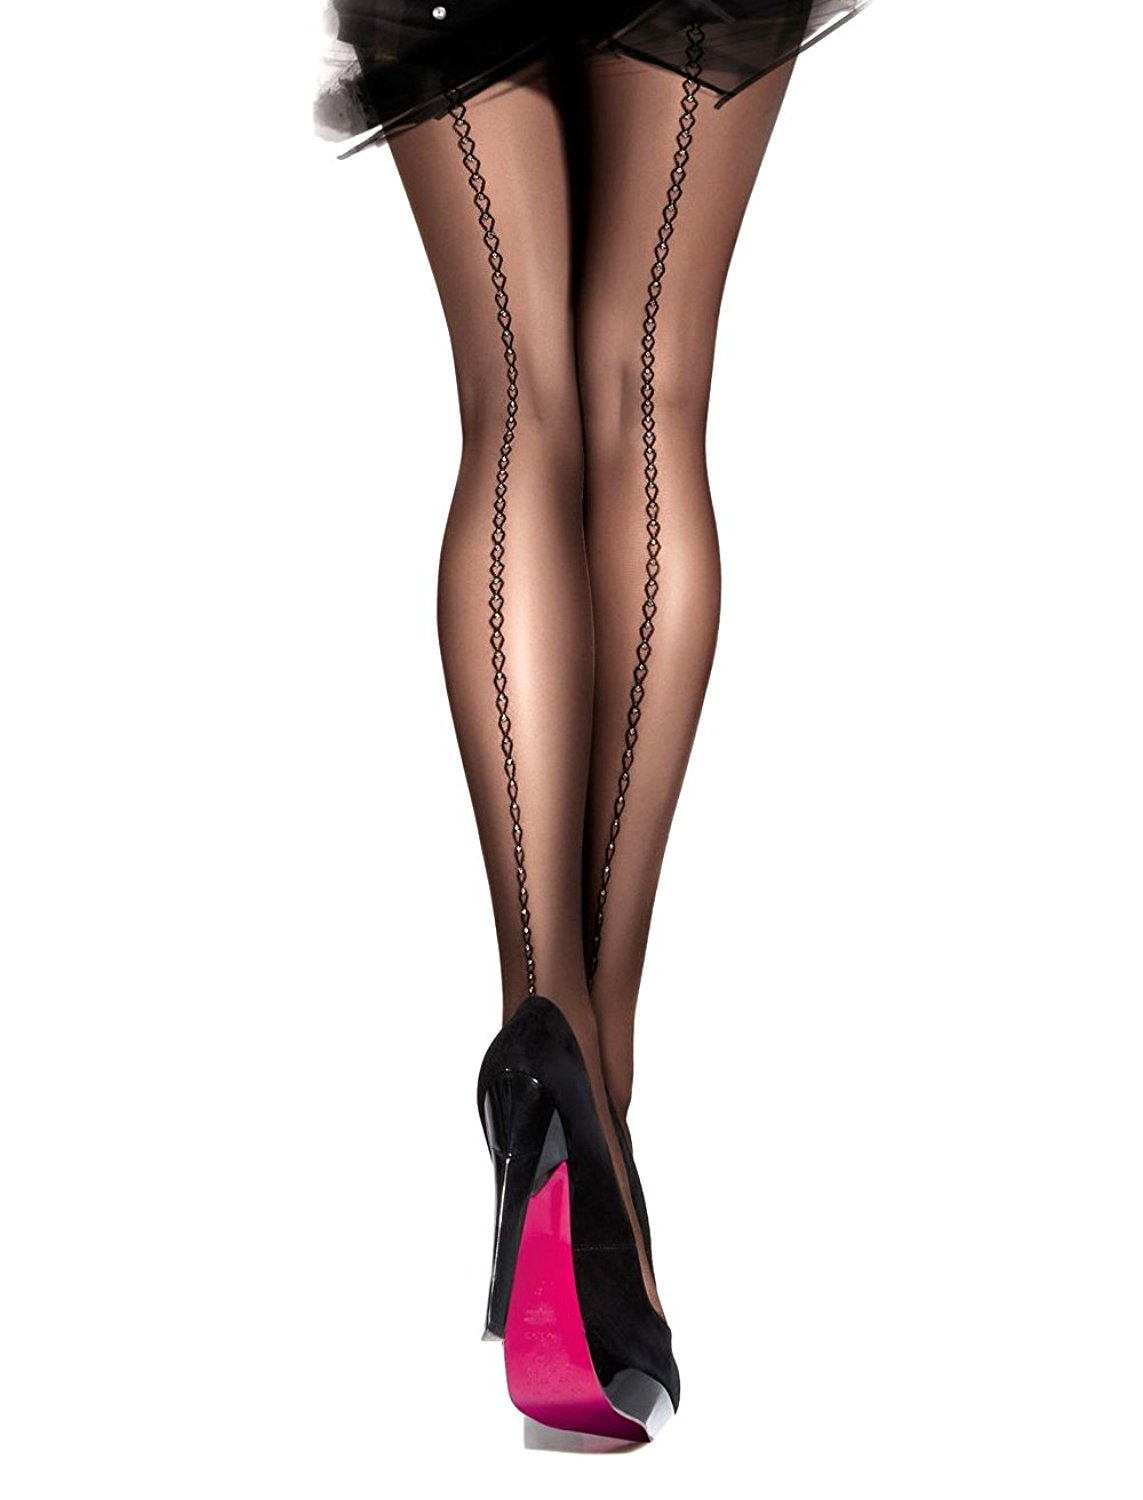 bd2b92725d190 Get Quotations · Sheer Tights | Women's Sheer Black Printed Tights with  Shimmering Back Seam | Gatta RONNA 20